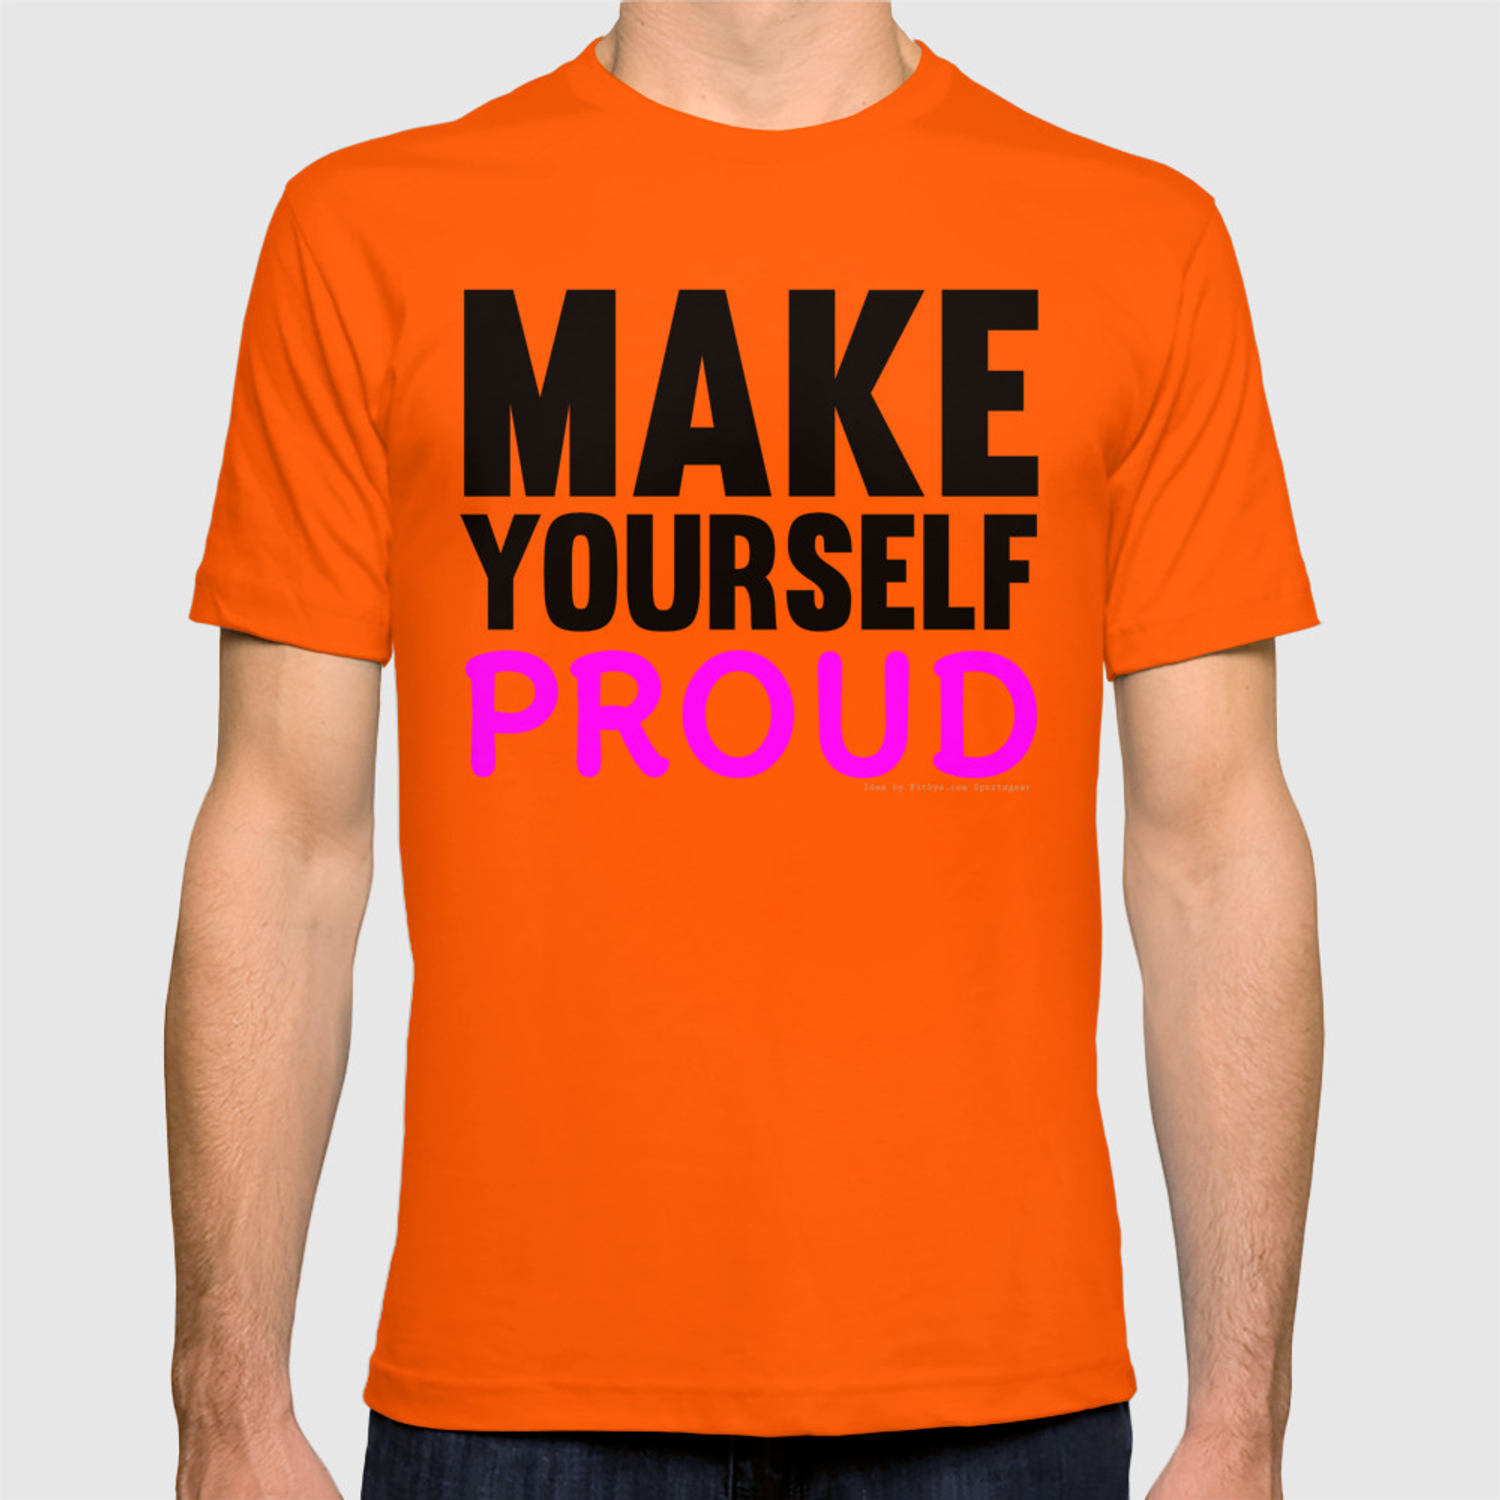 8f9592c65 Make Yourself Proud Fitness & Bodybuilding Motivation Quote T-shirt by  fitbys | Society6